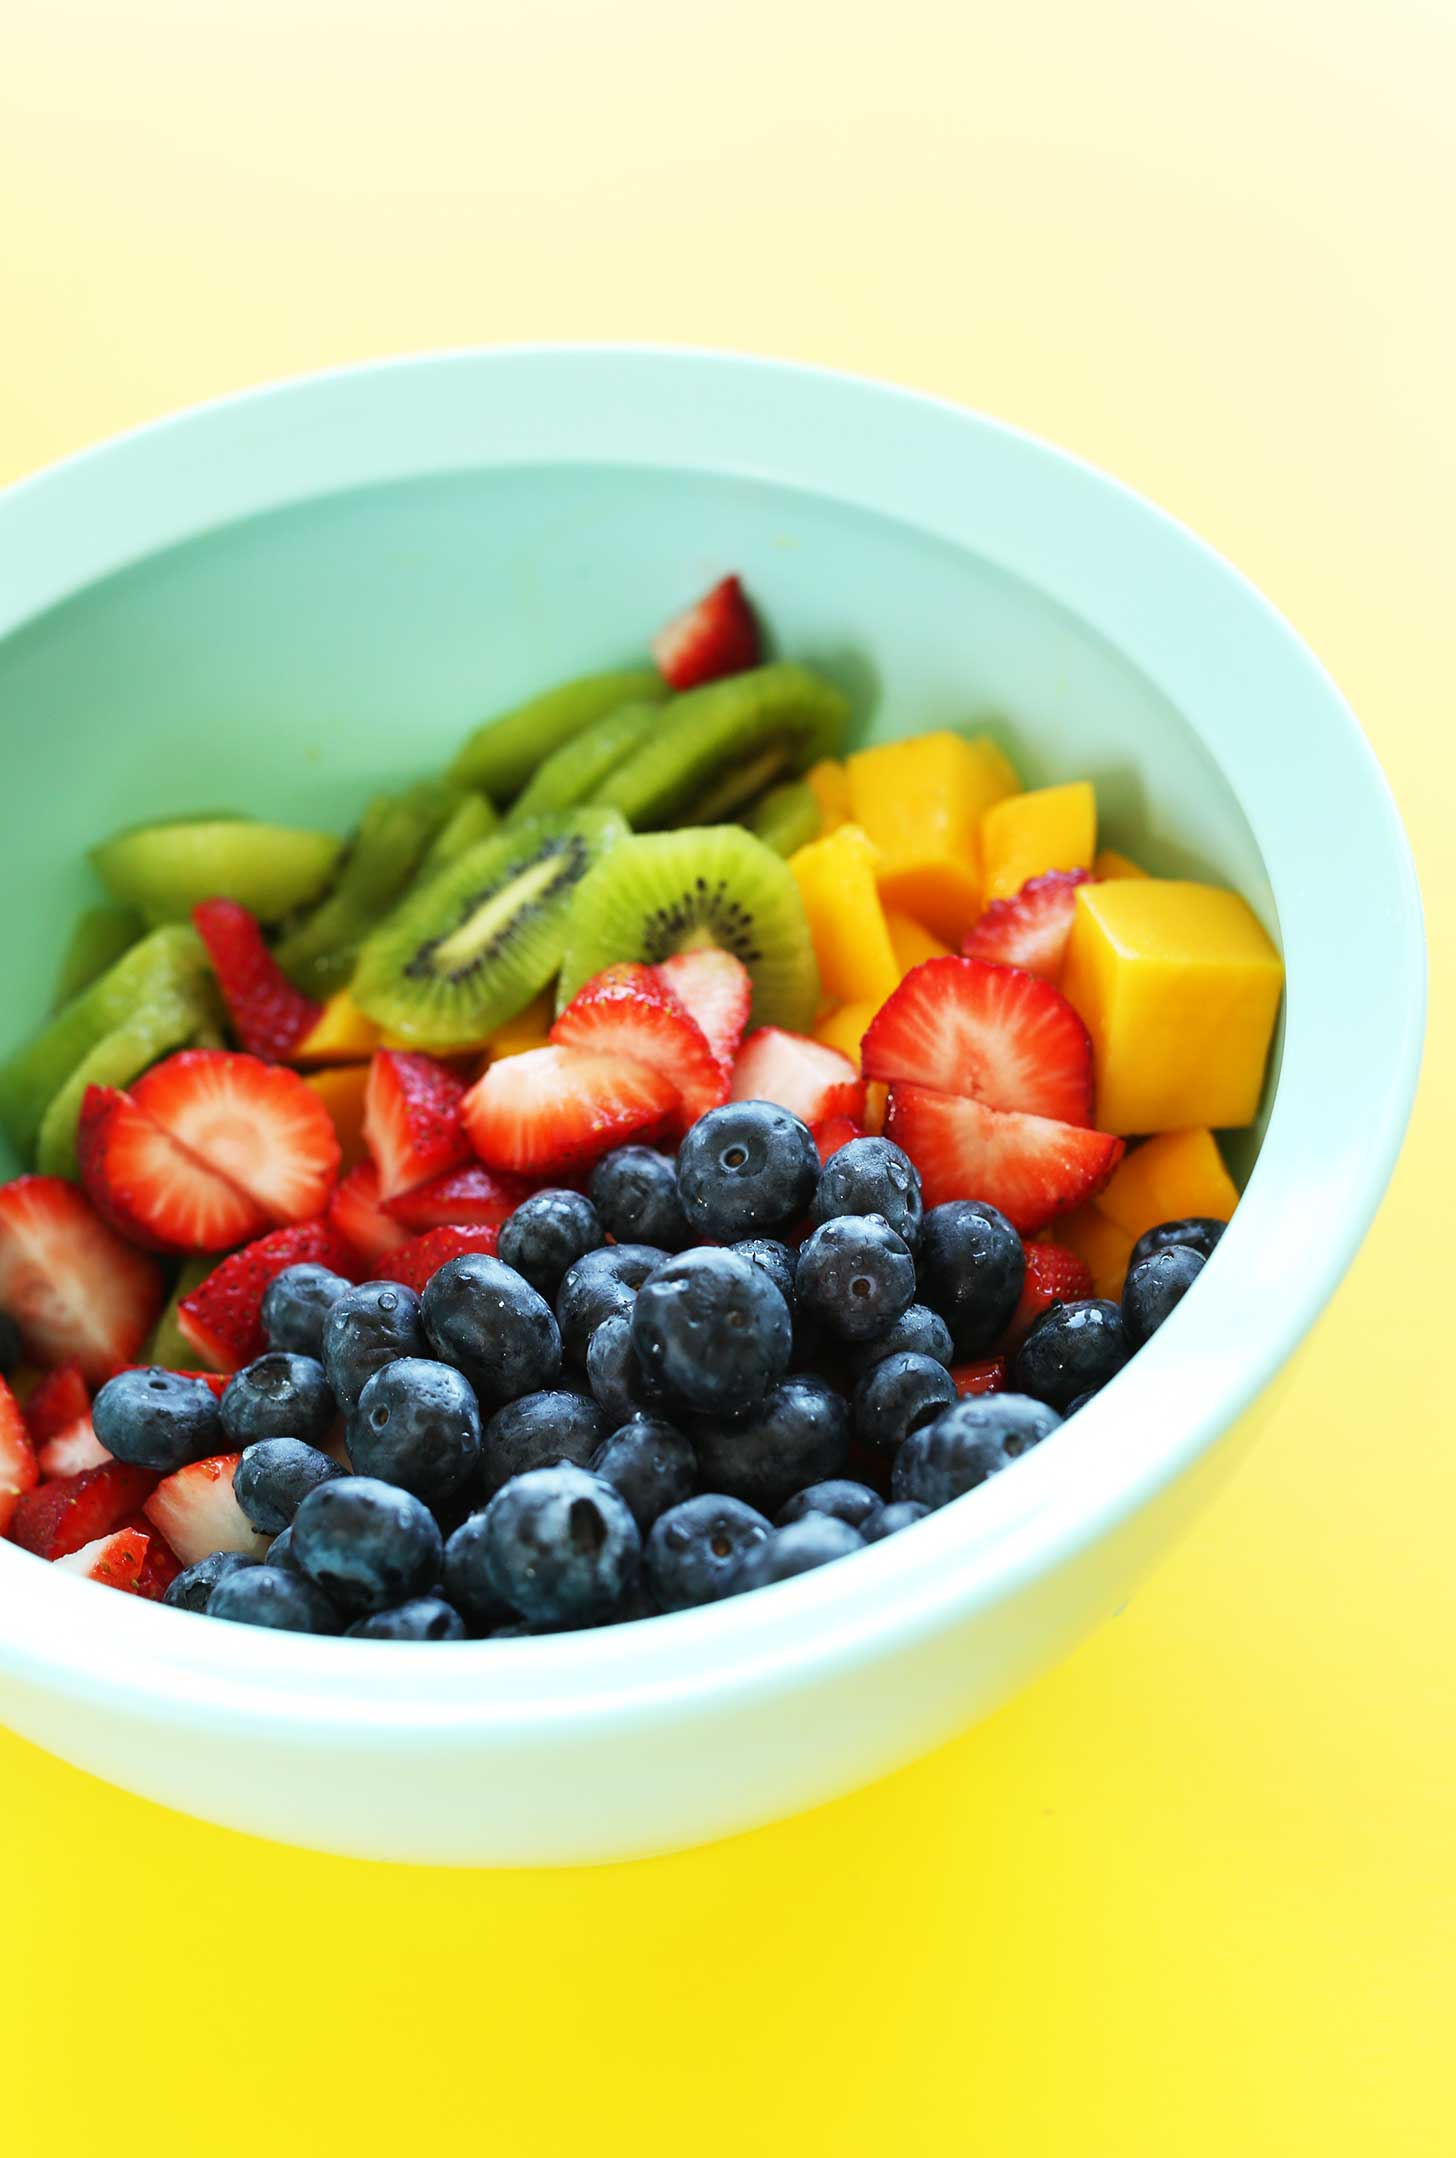 Bowl of mango, strawberries, kiwi, and blueberries for an incredible summer side dish